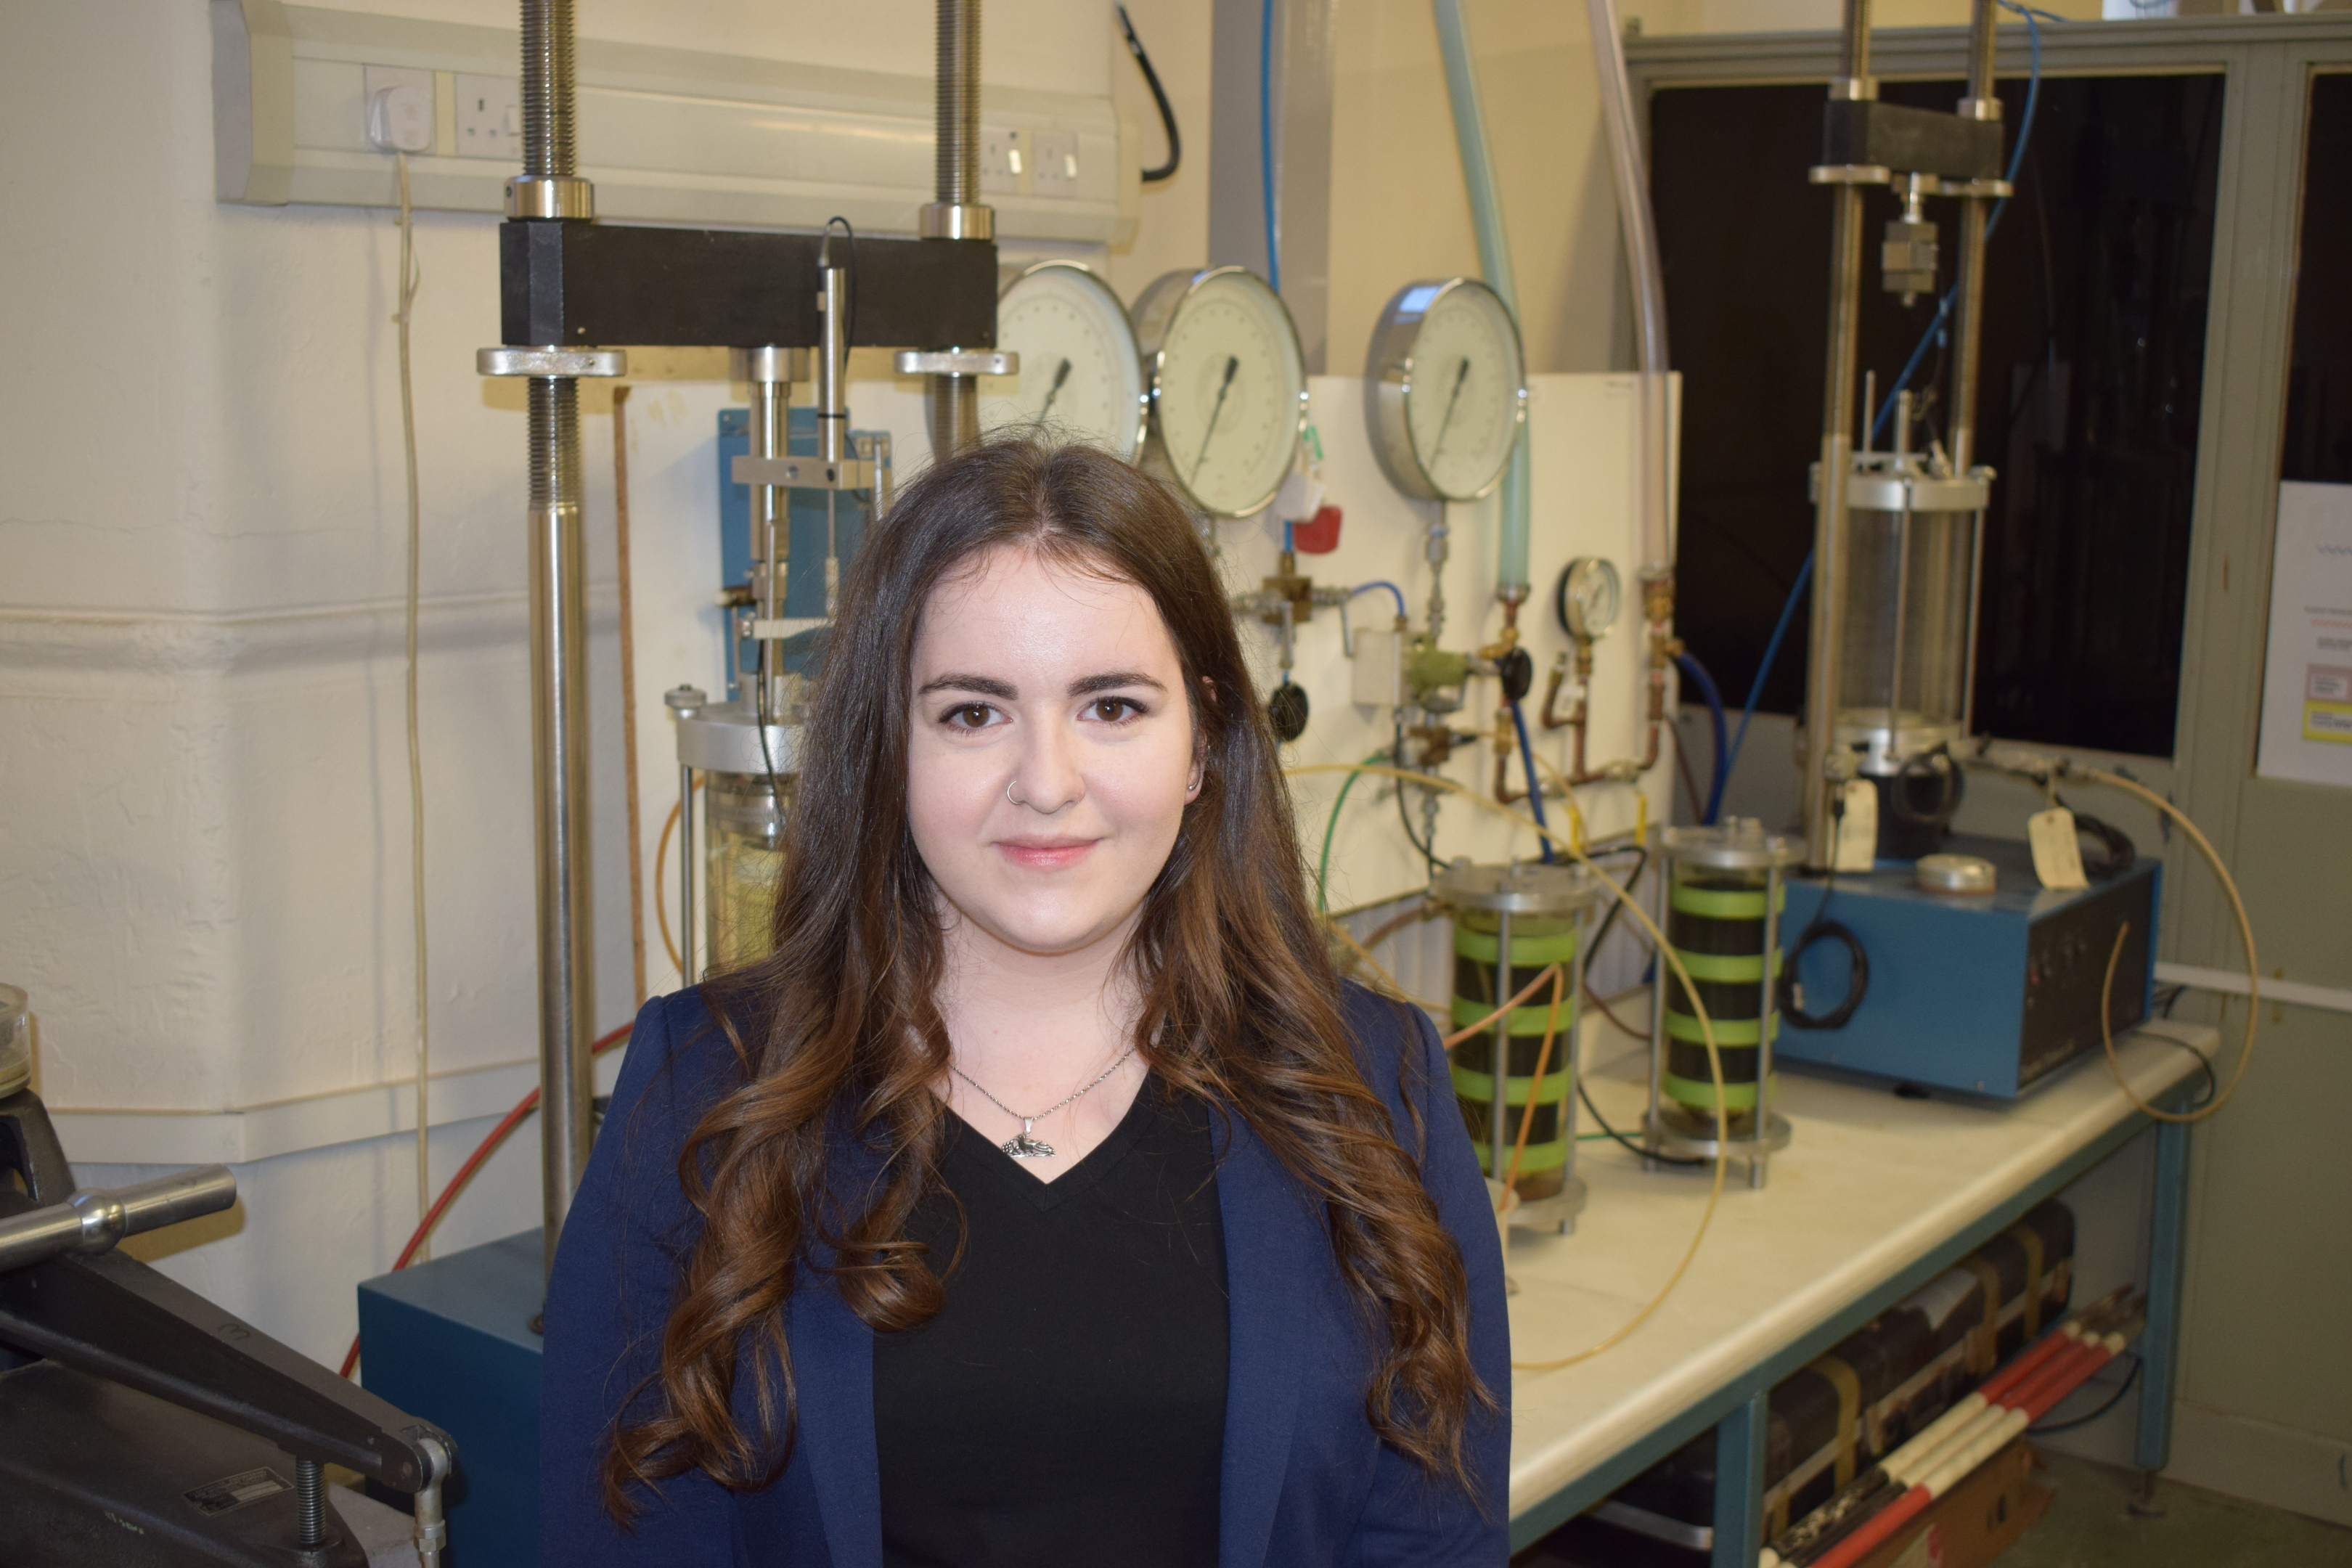 Civil Engineering student Aleksandra Tomczyk, who helped organise Abertay's Unsung Heroes of STEM event.